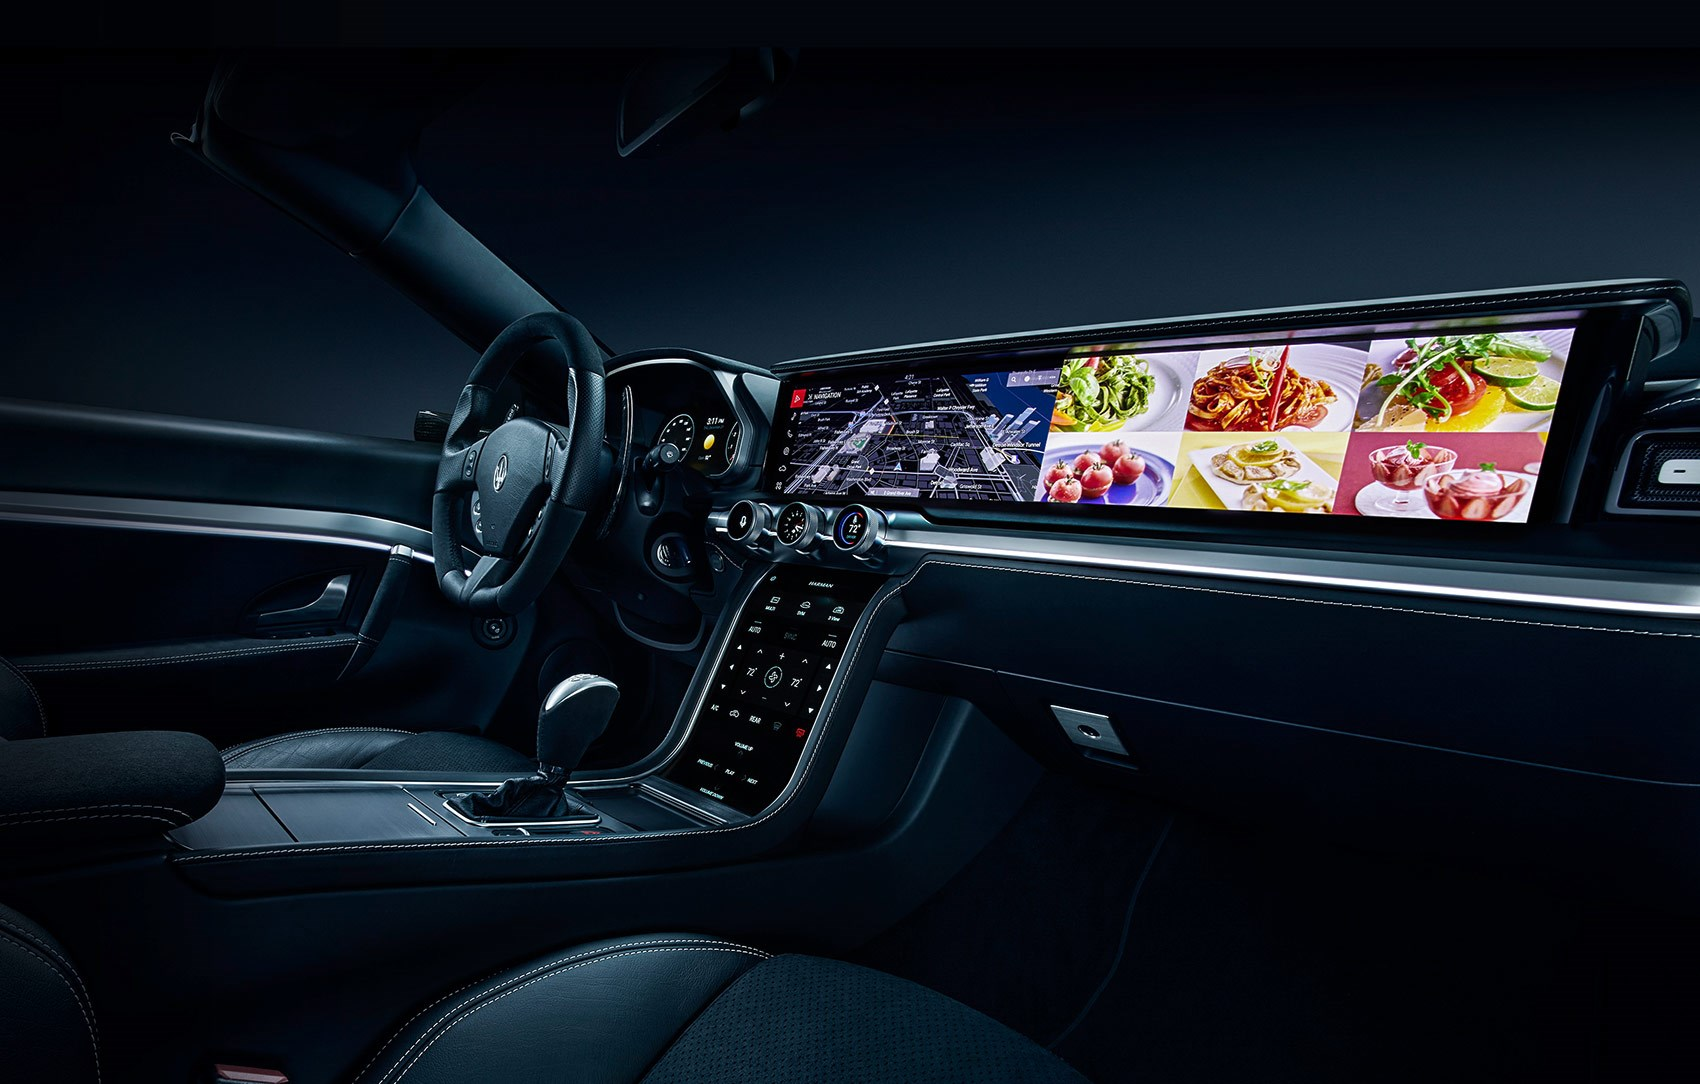 Future Of The Car: The Future Of Car Interiors, Multimedia And Touchscreens